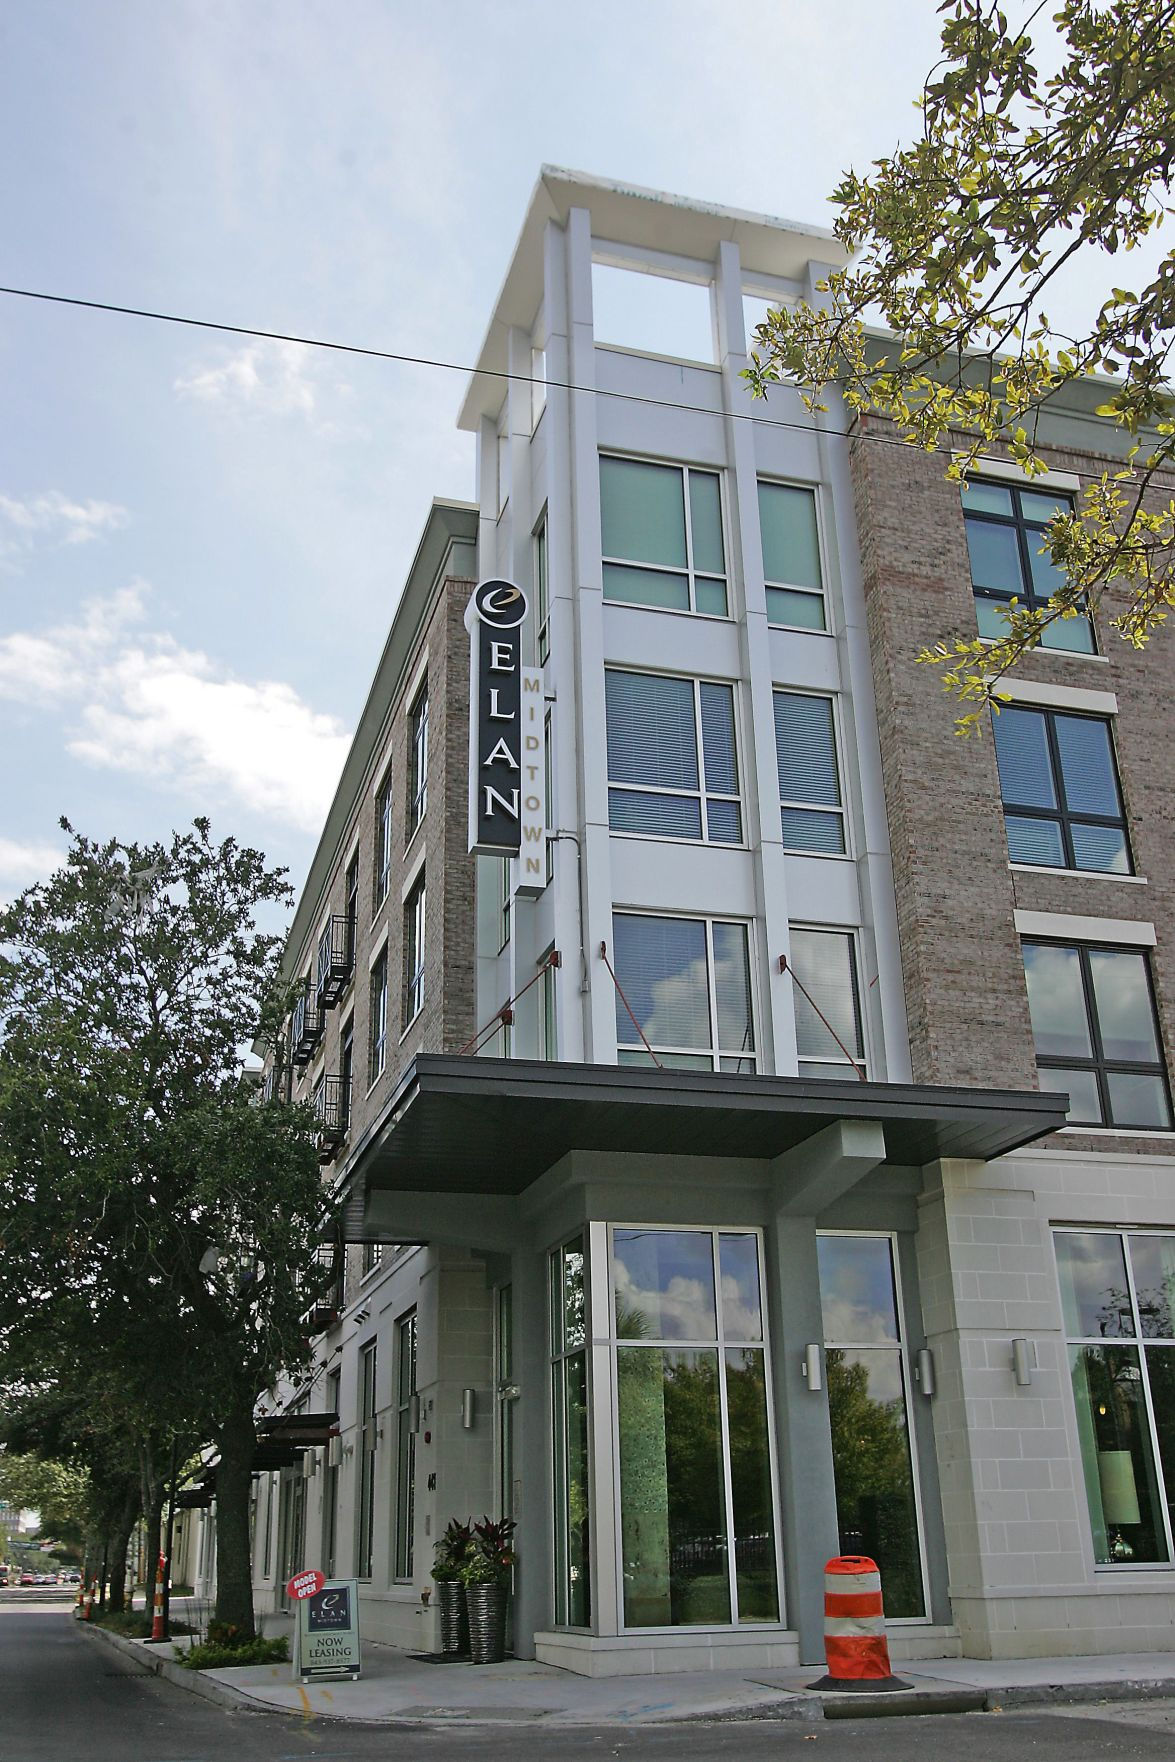 Elan Midtown — First tenants move into plush downtown Charleston apartment village, to include pool and retail spaces